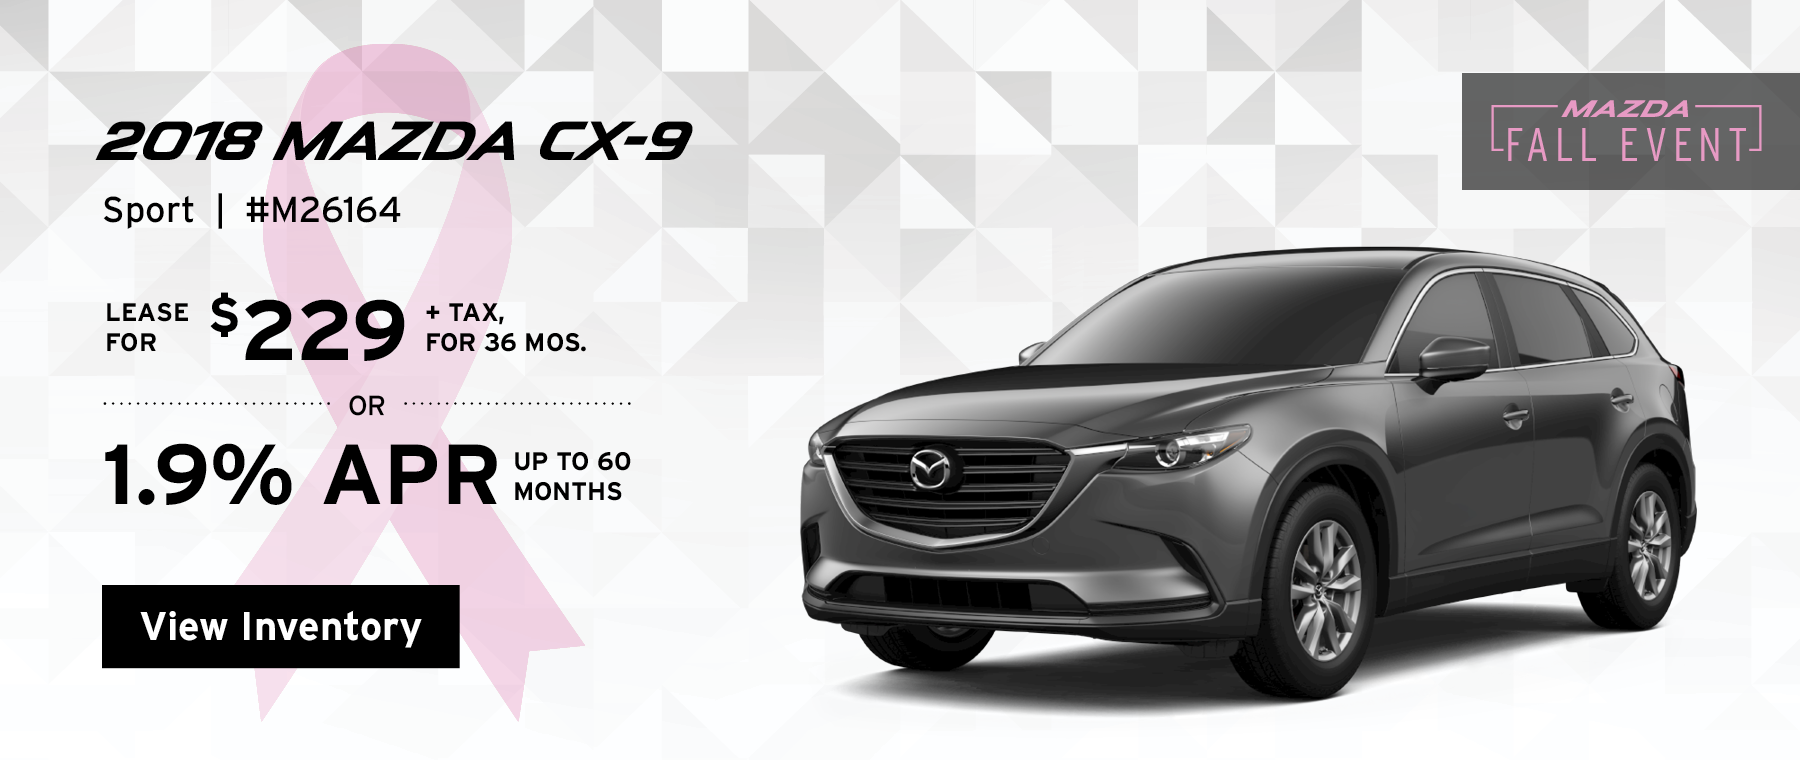 Lease the 2018 Mazda CX-9 Sport for $229, plus tax for 36 months, or 1.9% APR up to 60 months.